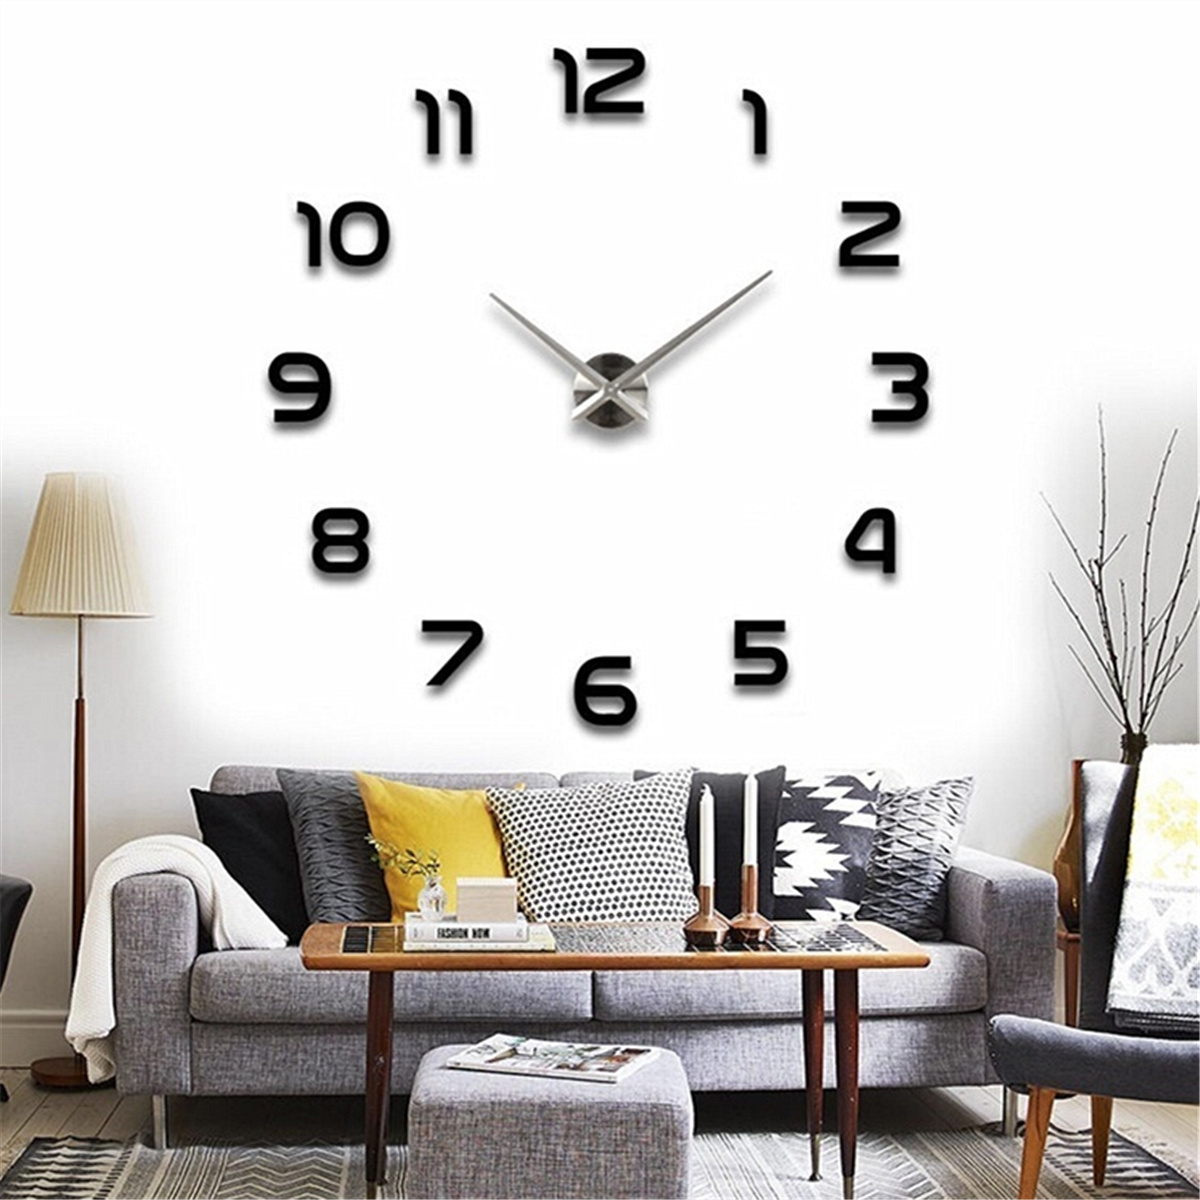 DIY Large Wall Sticker Clock 3D Mirror Modern Home Office diy home design Decor Art Decal US